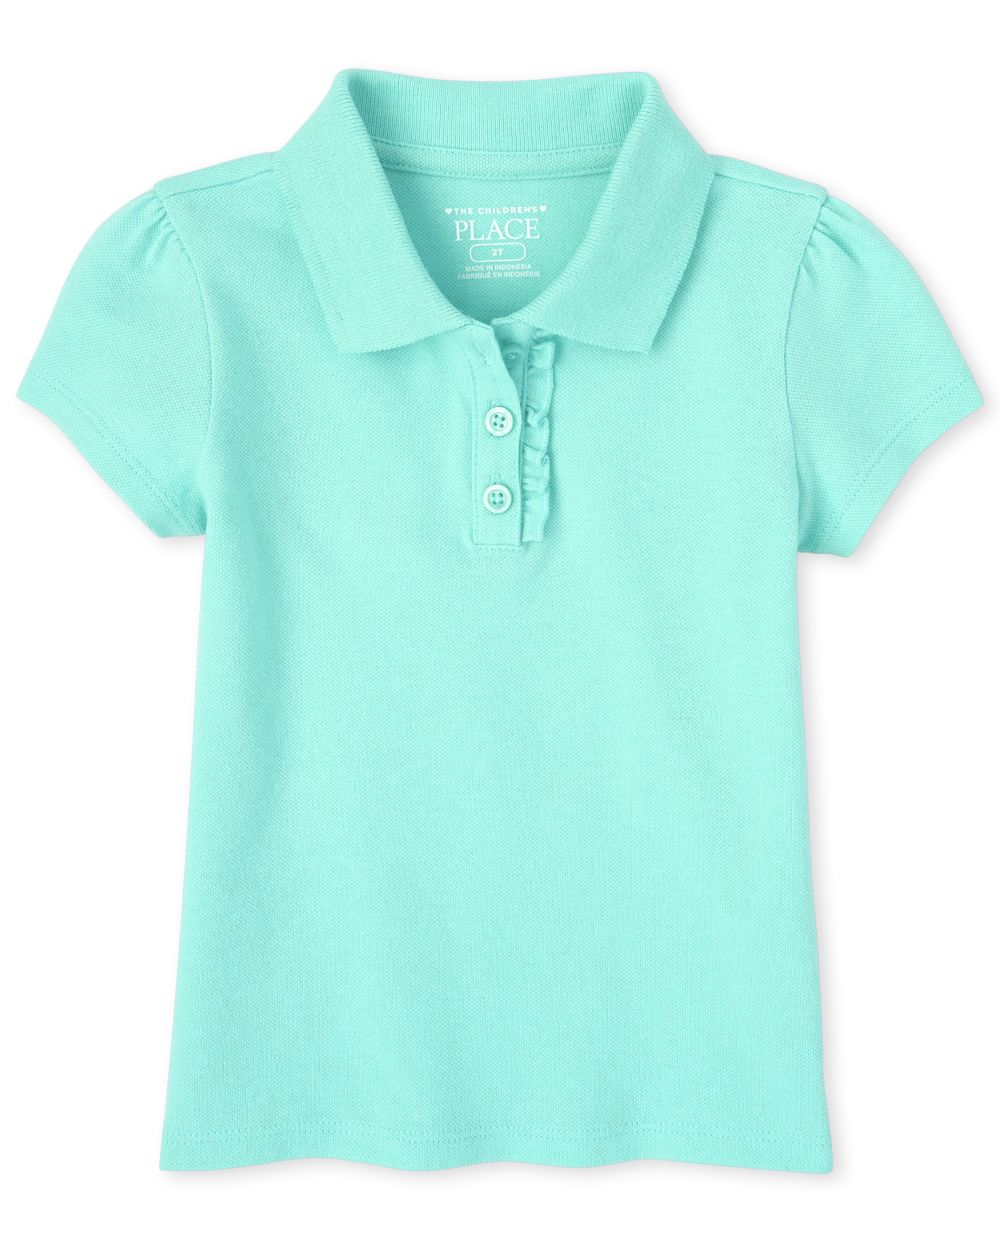 Toddler Girls Uniform Pique Polo